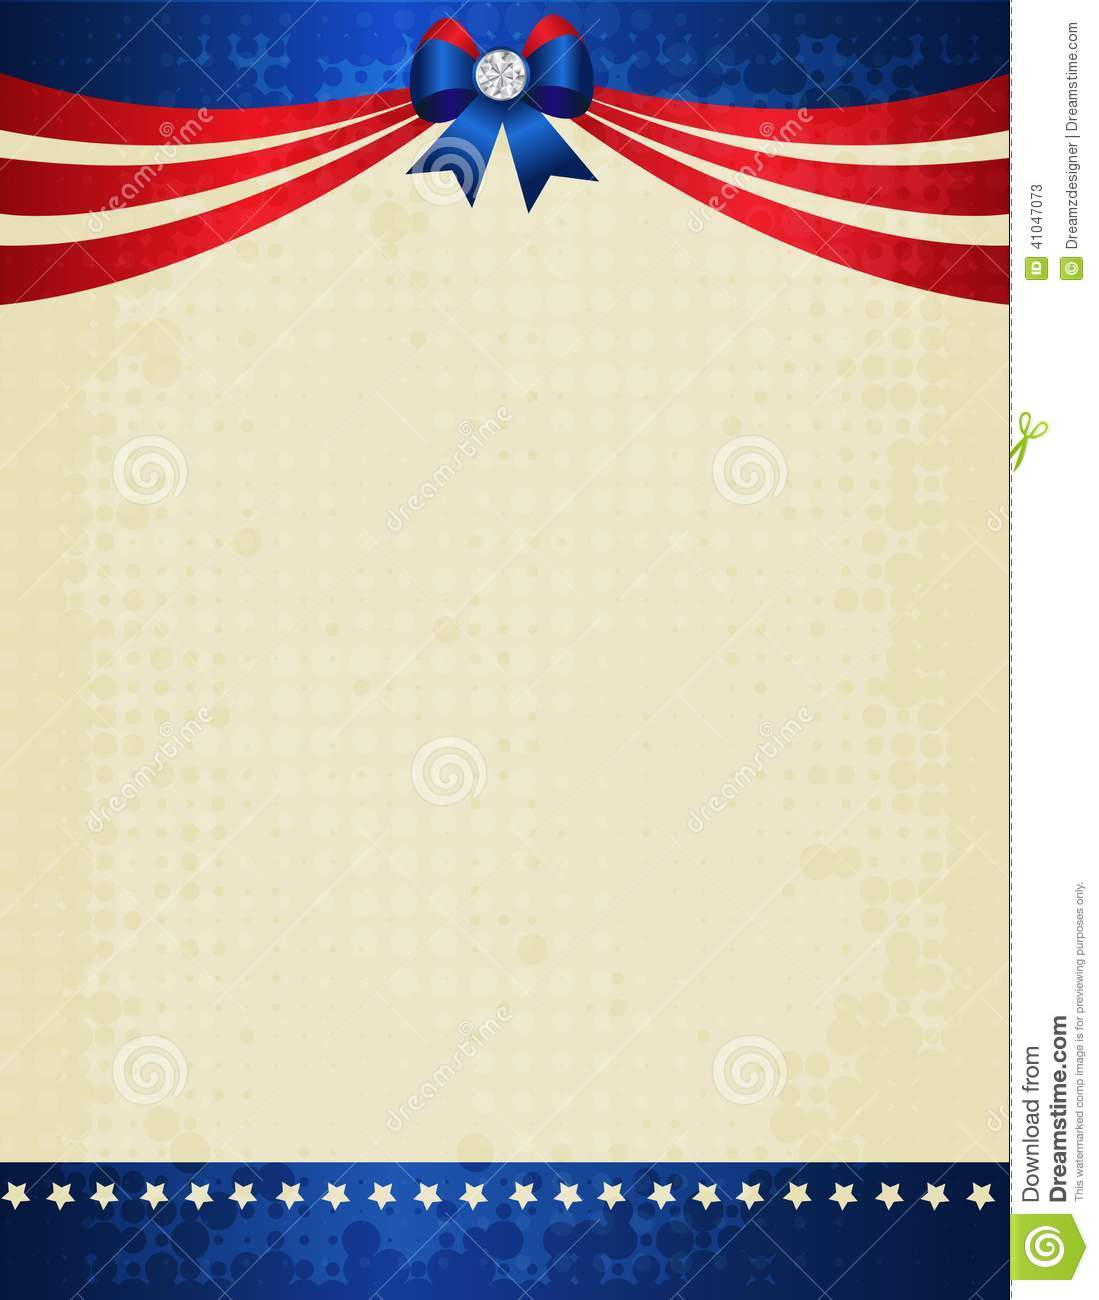 patriotic border stock vector  image of background